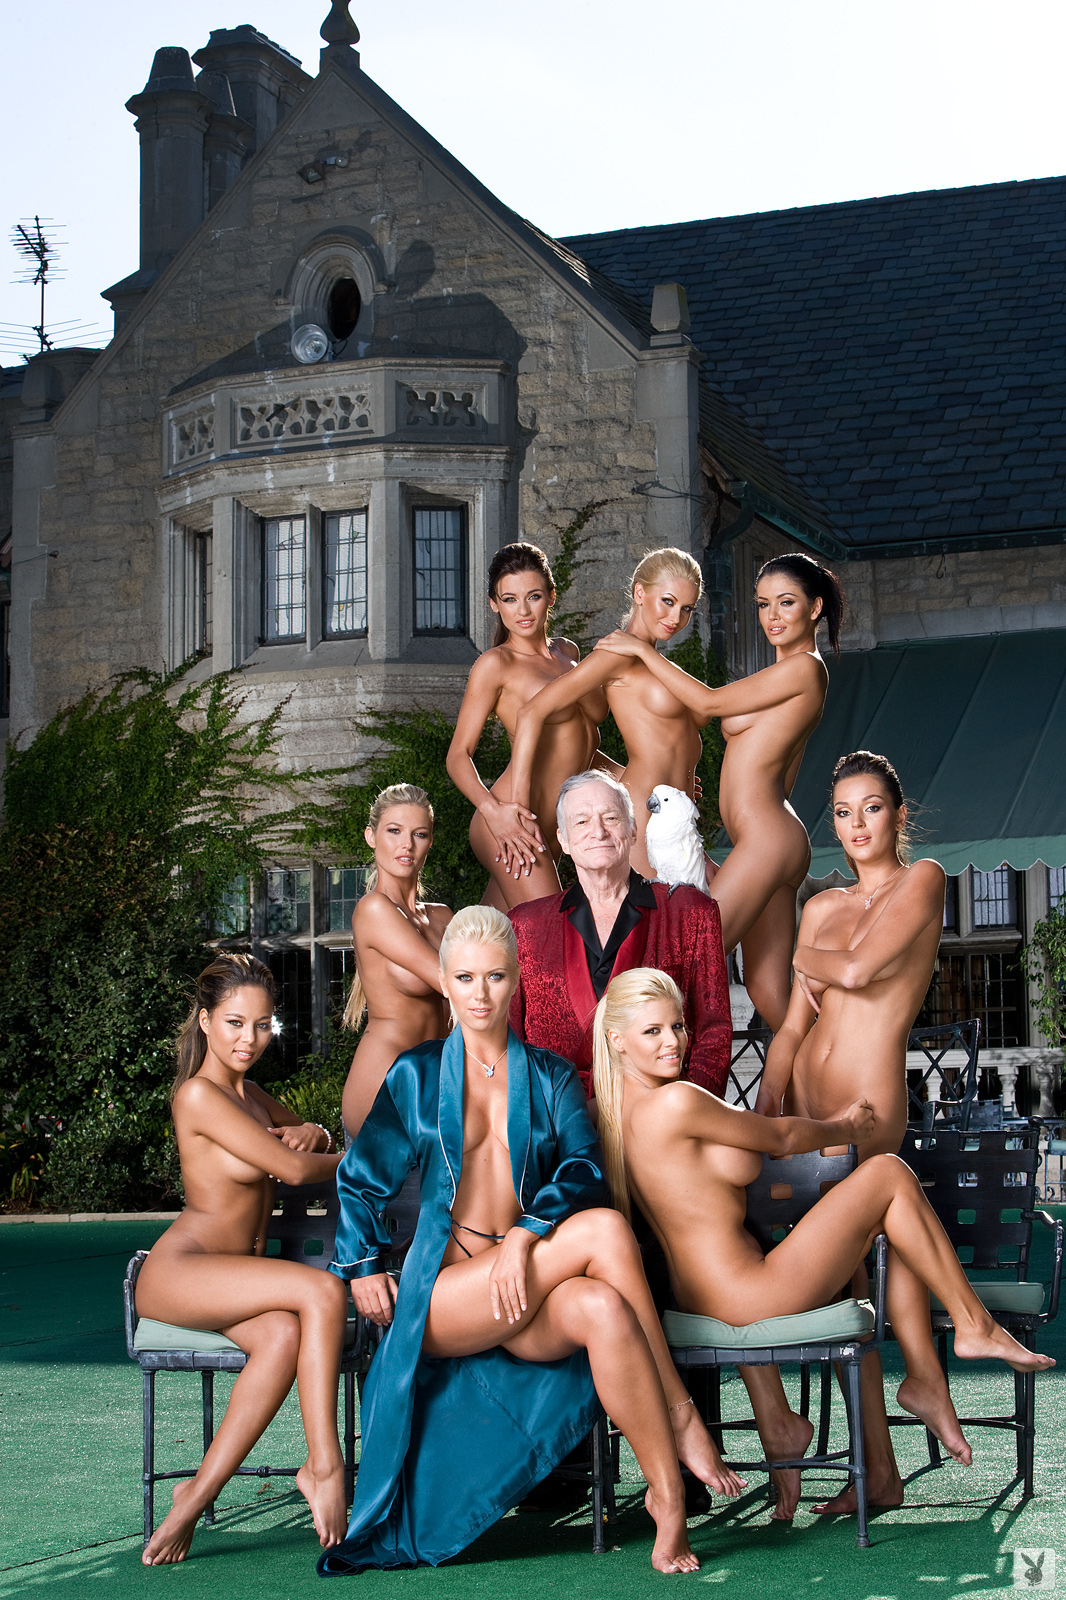 Playboy mansion xxx photos nackt photos